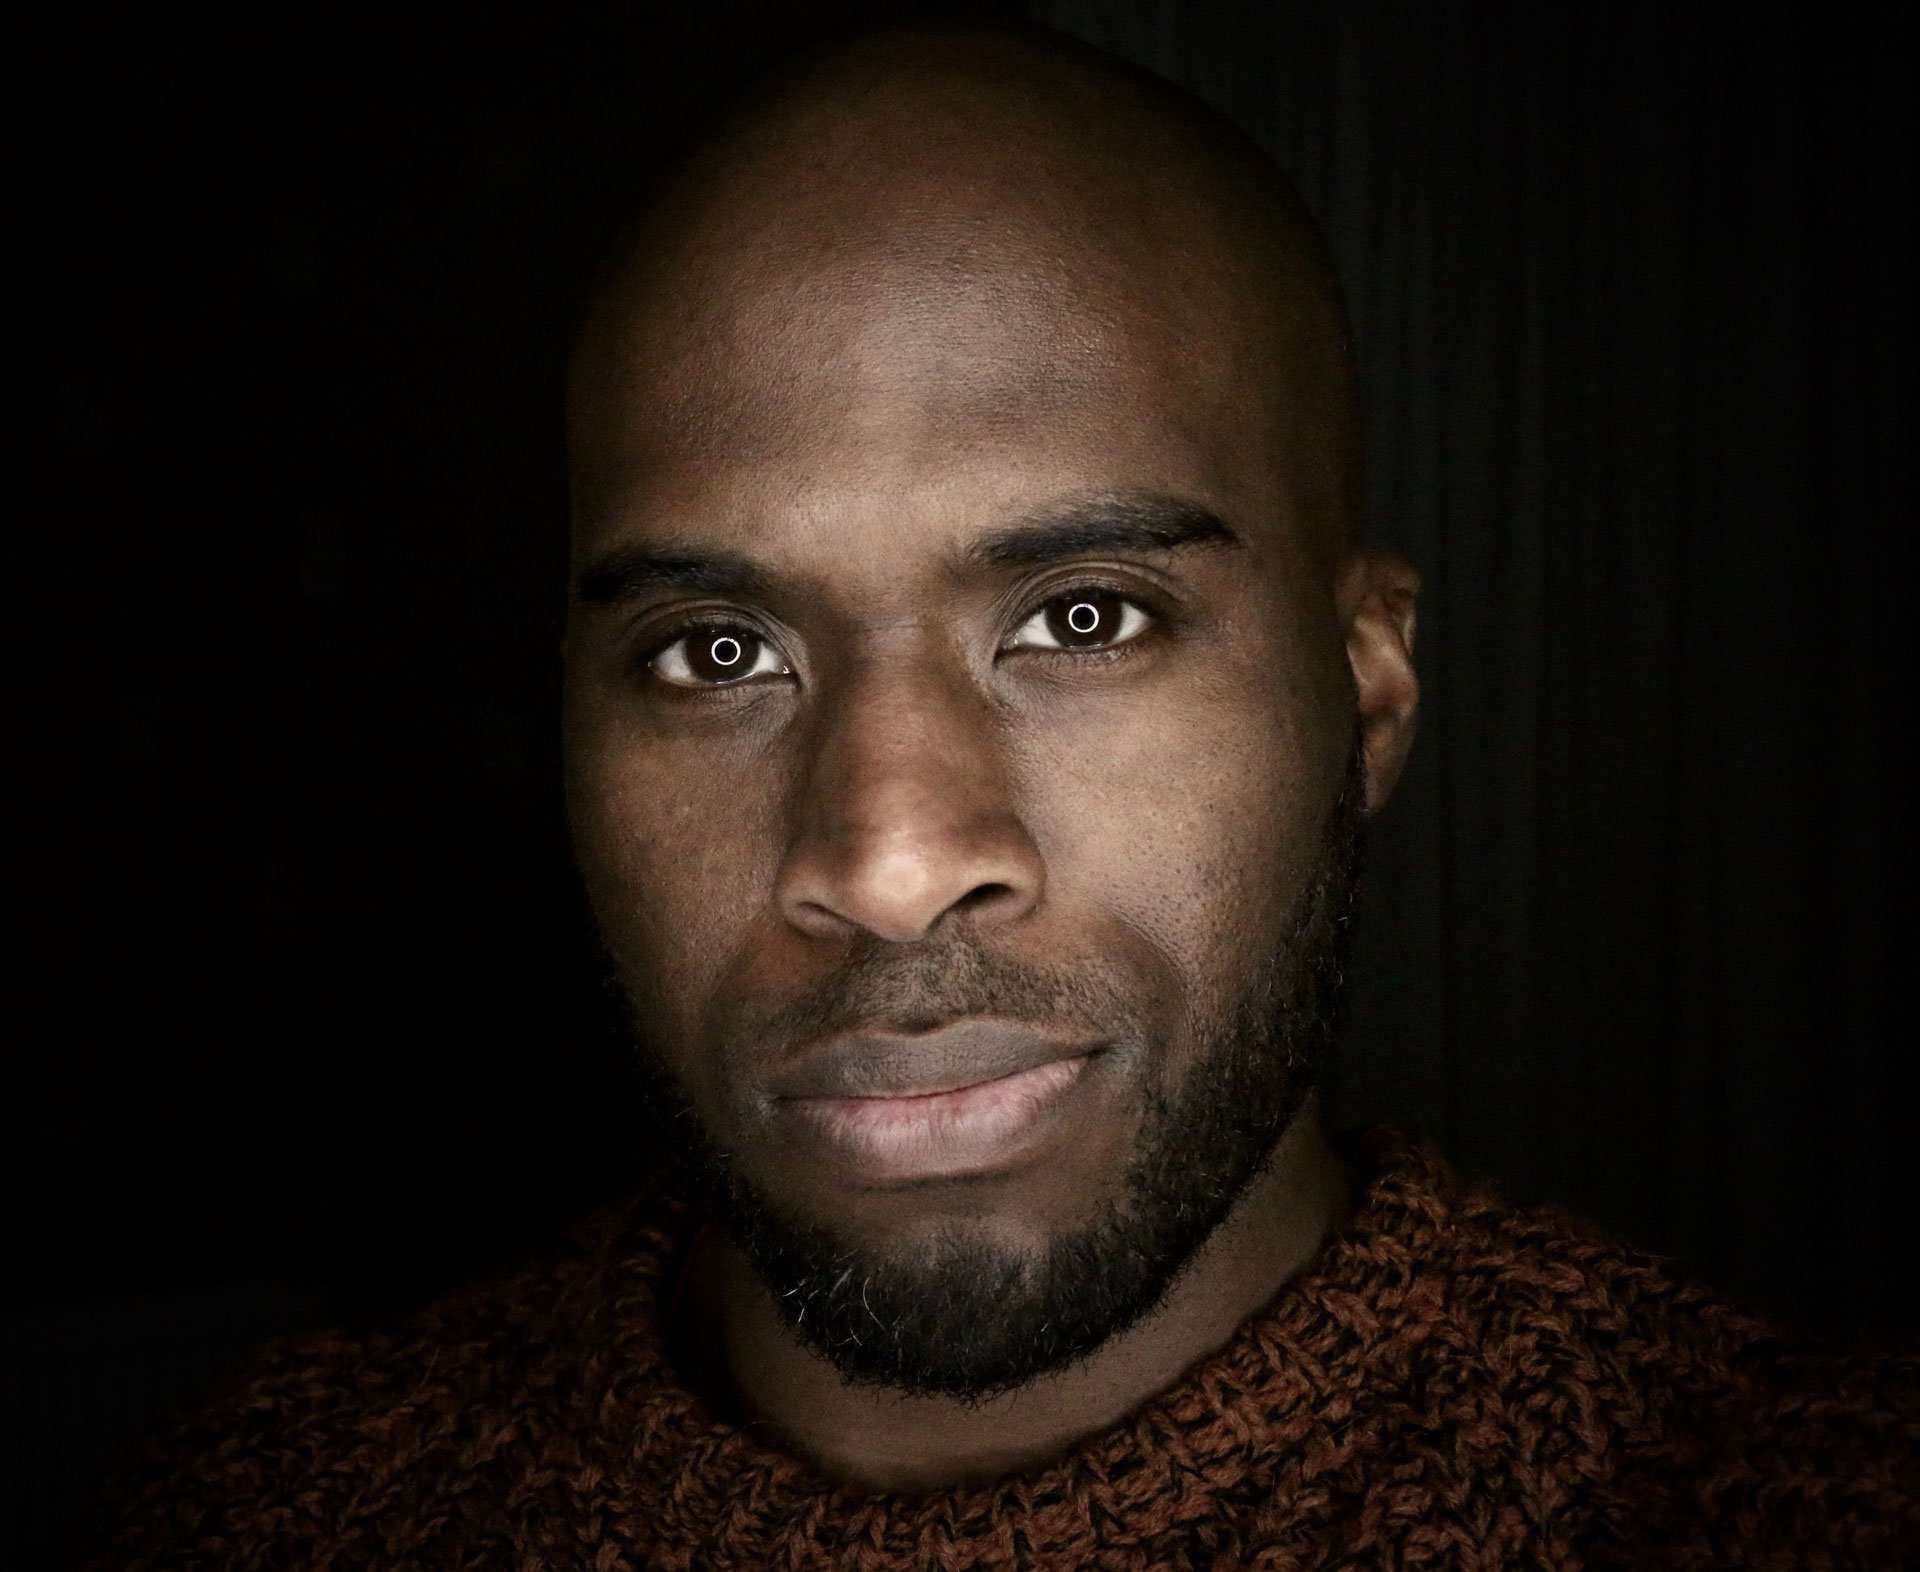 Image of black men with ring light